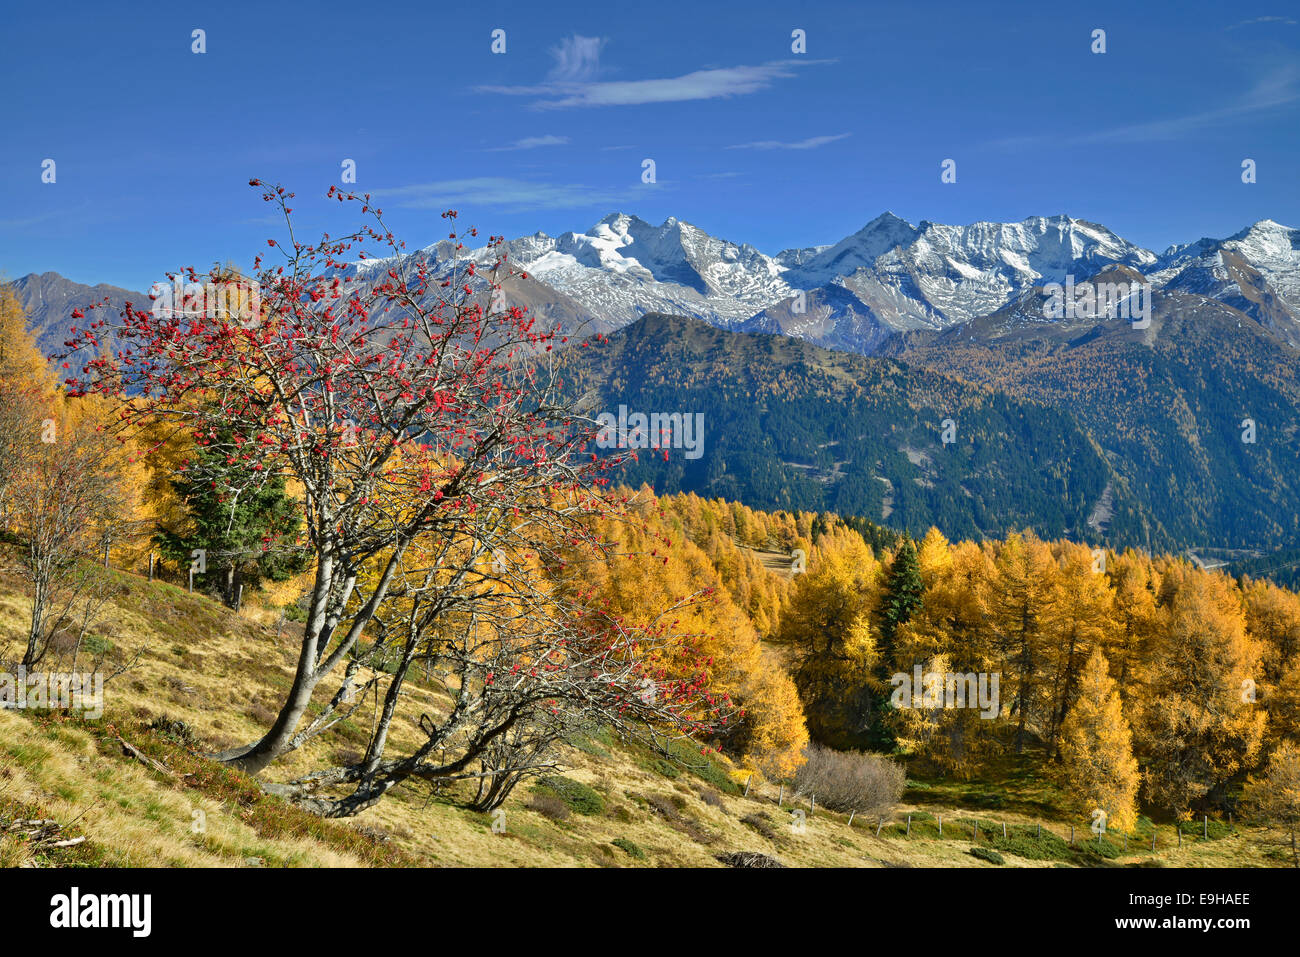 Larch forest (Larix) in autumn, behind the Zillertal Alps, Tyrol, Austria Stock Photo